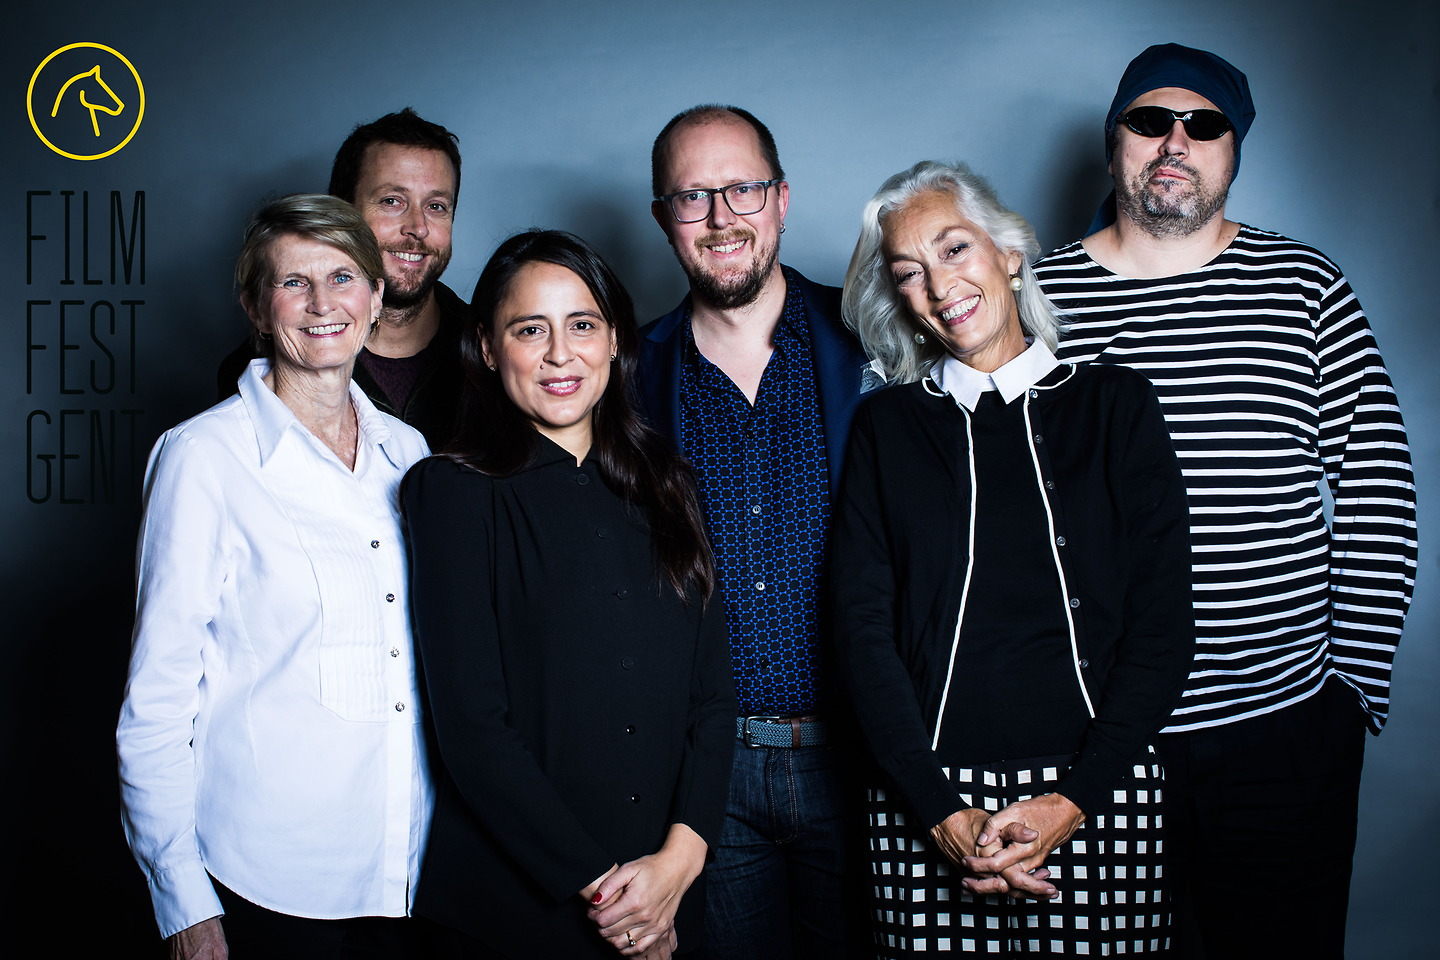 Film Fest Gent - Portretten van de Internationale Jury